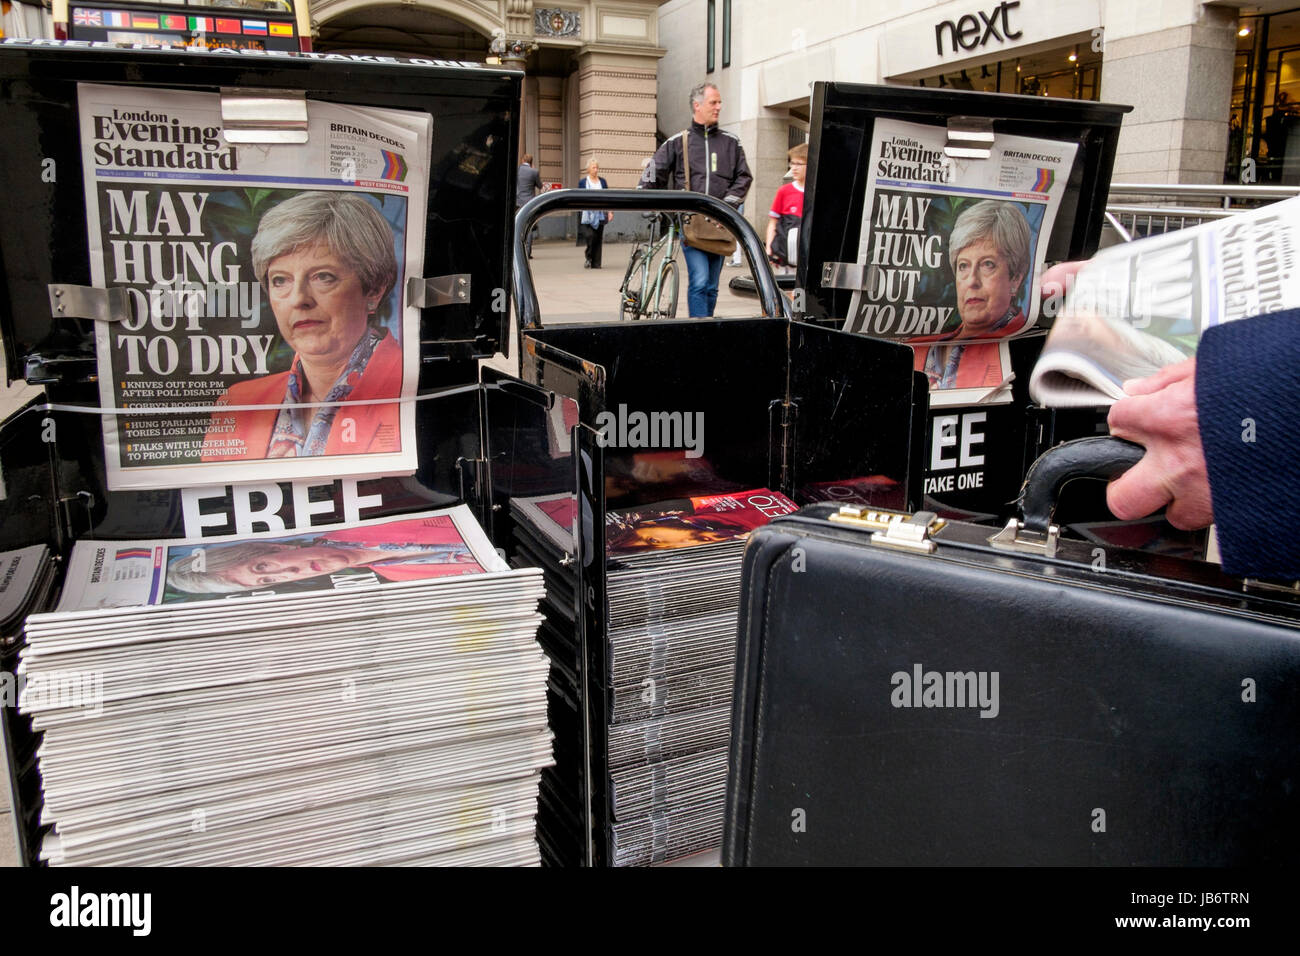 London, UK. 9th June, 2017. The London Evening Standard newspaper front page on the day after the UK General Election - Stock Image